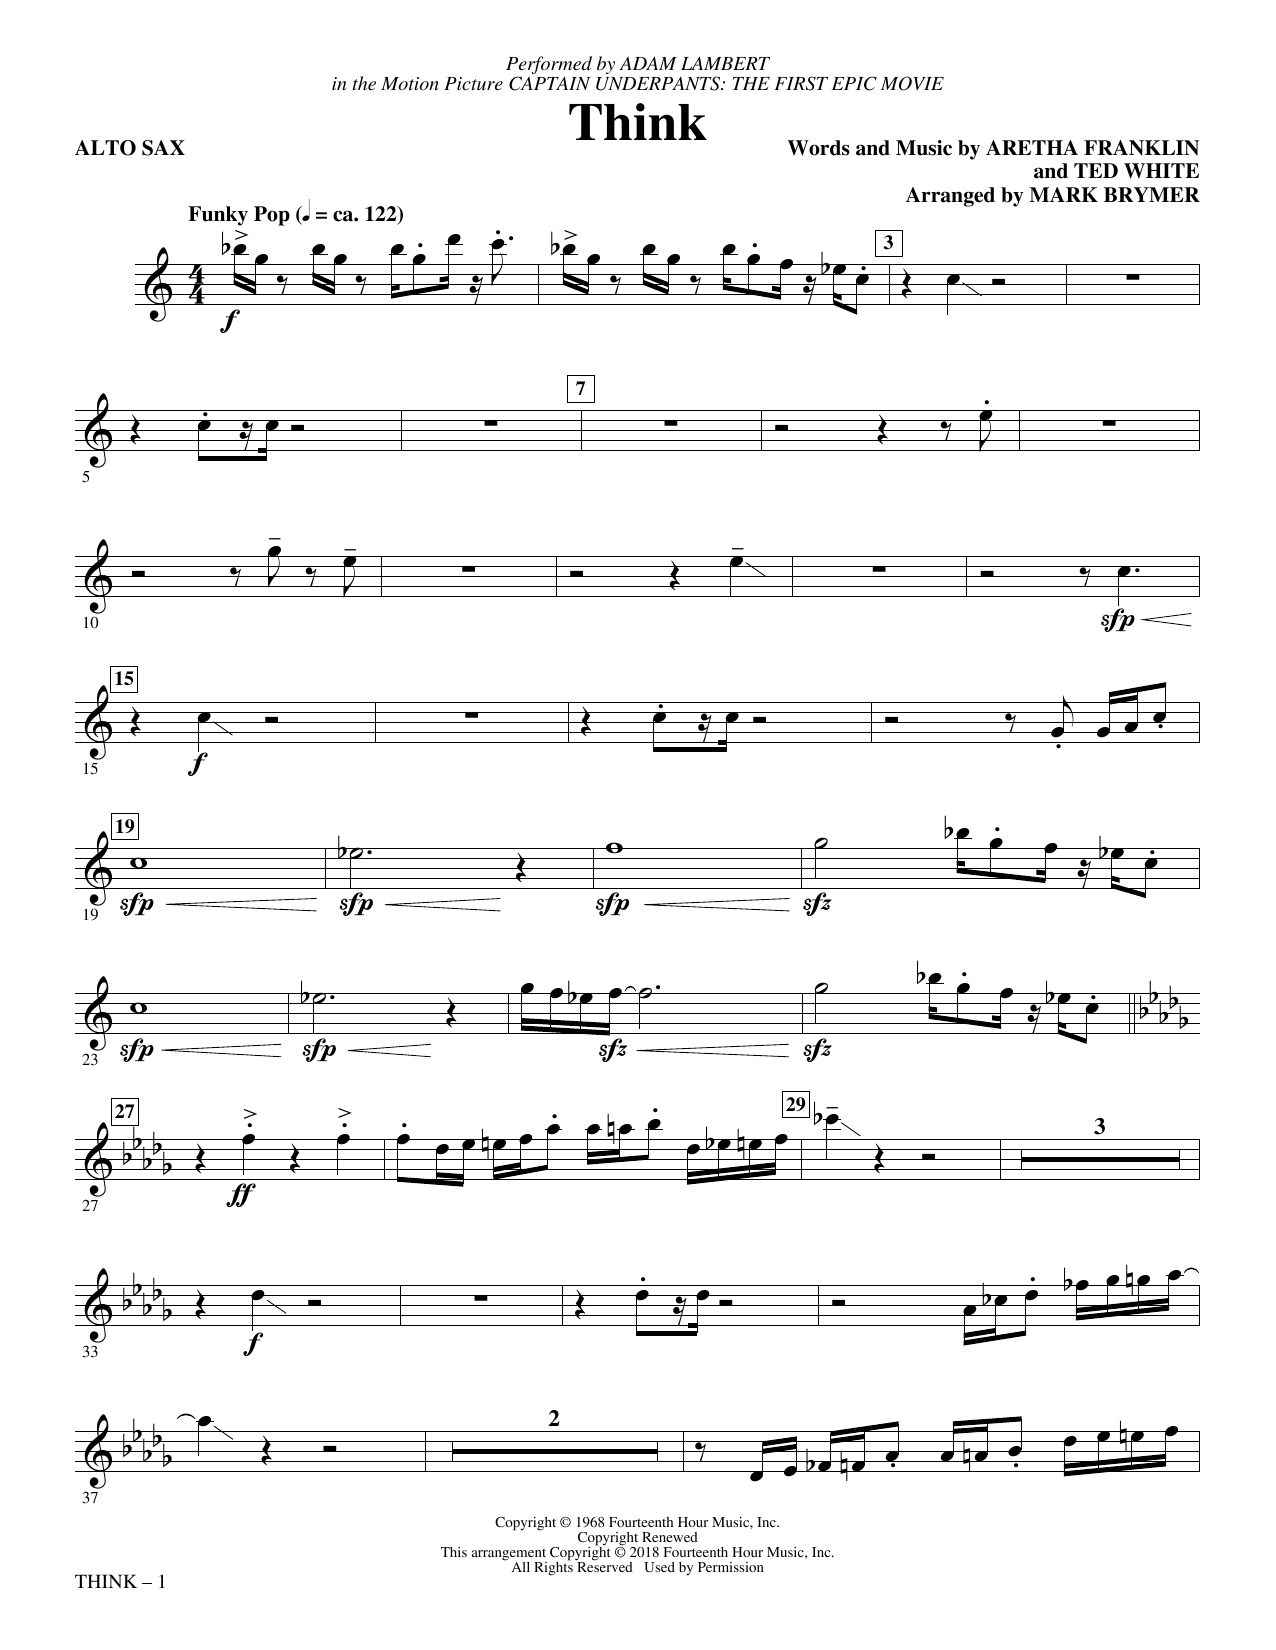 Download Adam Lambert 'Think (from Captain Underpants: The First Epic Movie) (Arr. Mark Brymer) - Alto Sax' Digital Sheet Music Notes & Chords and start playing in minutes